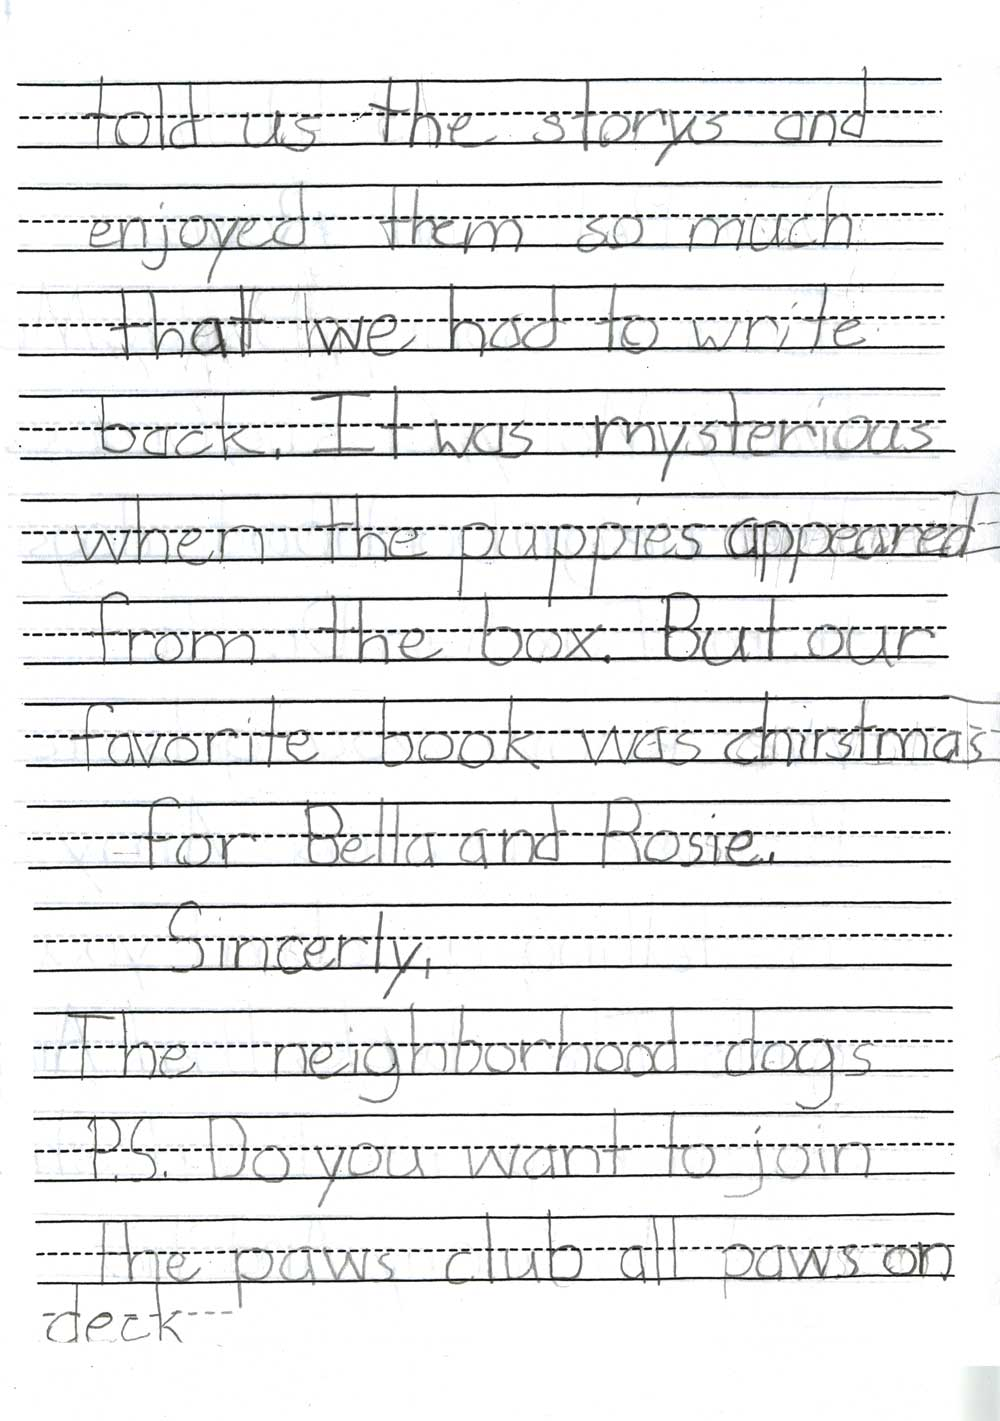 Letter from the neighborhood dogs - page 2